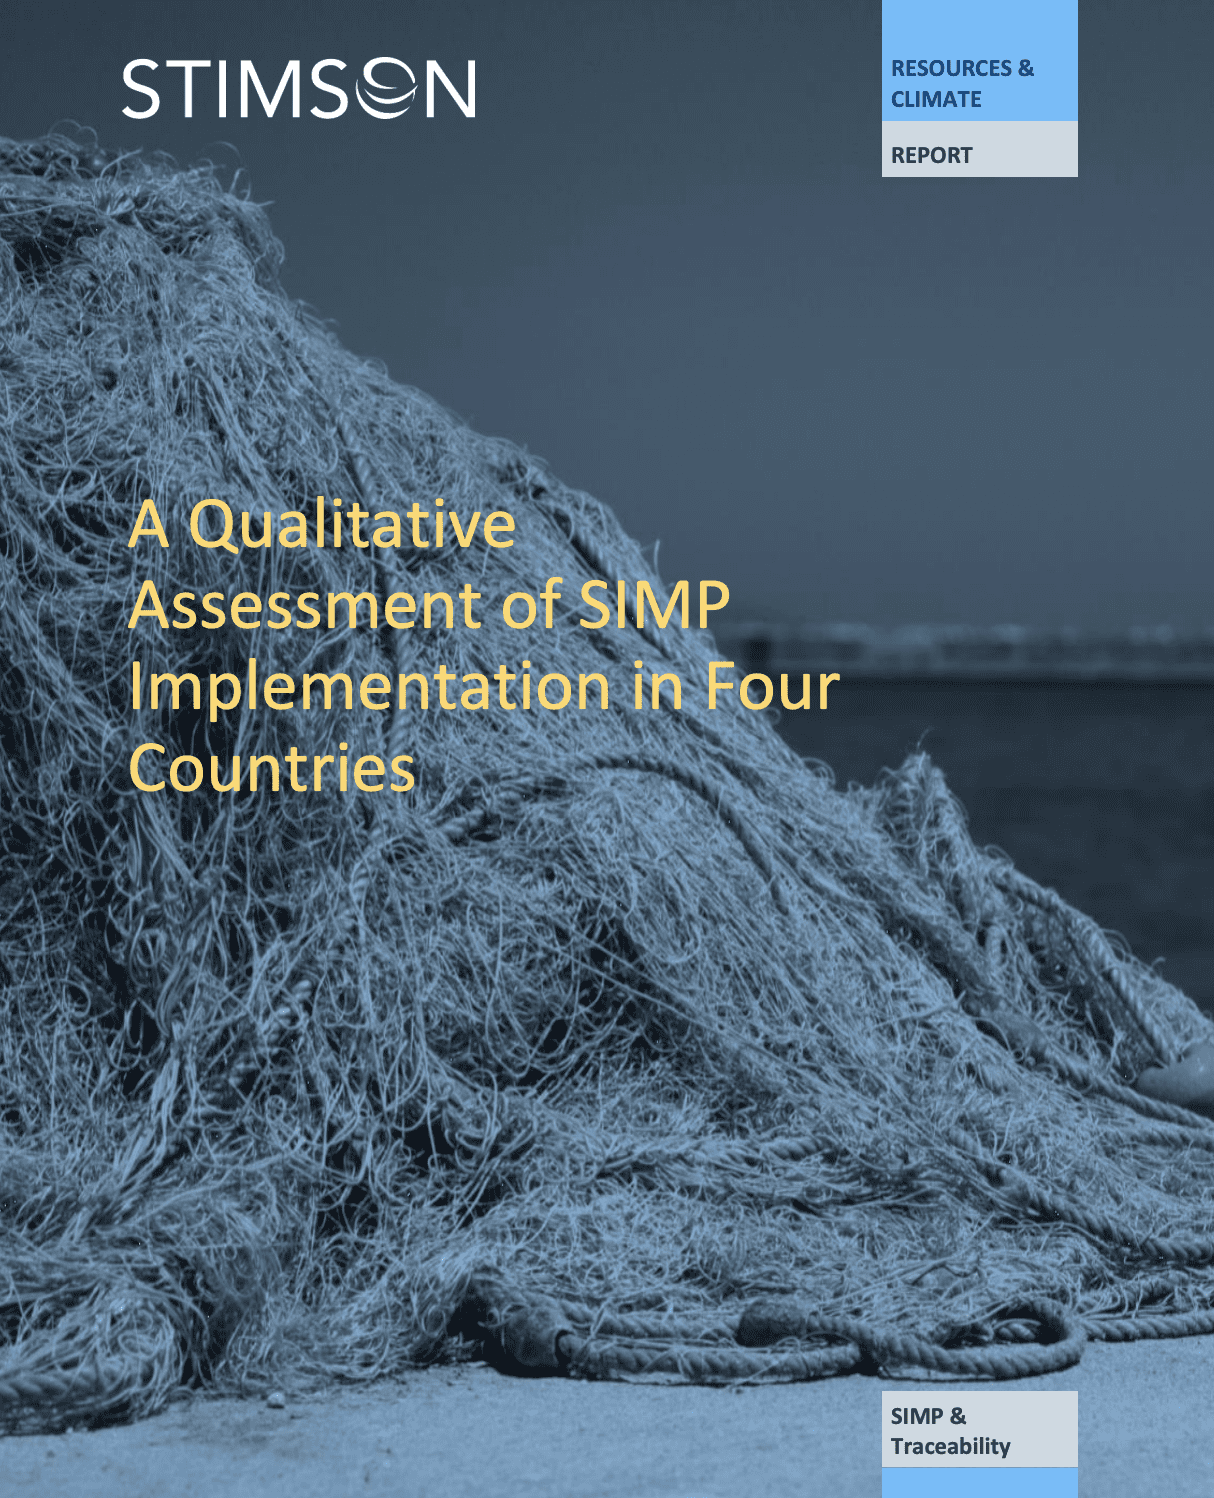 A Qualitative Assessment of SIMP Implementation in Four Countries